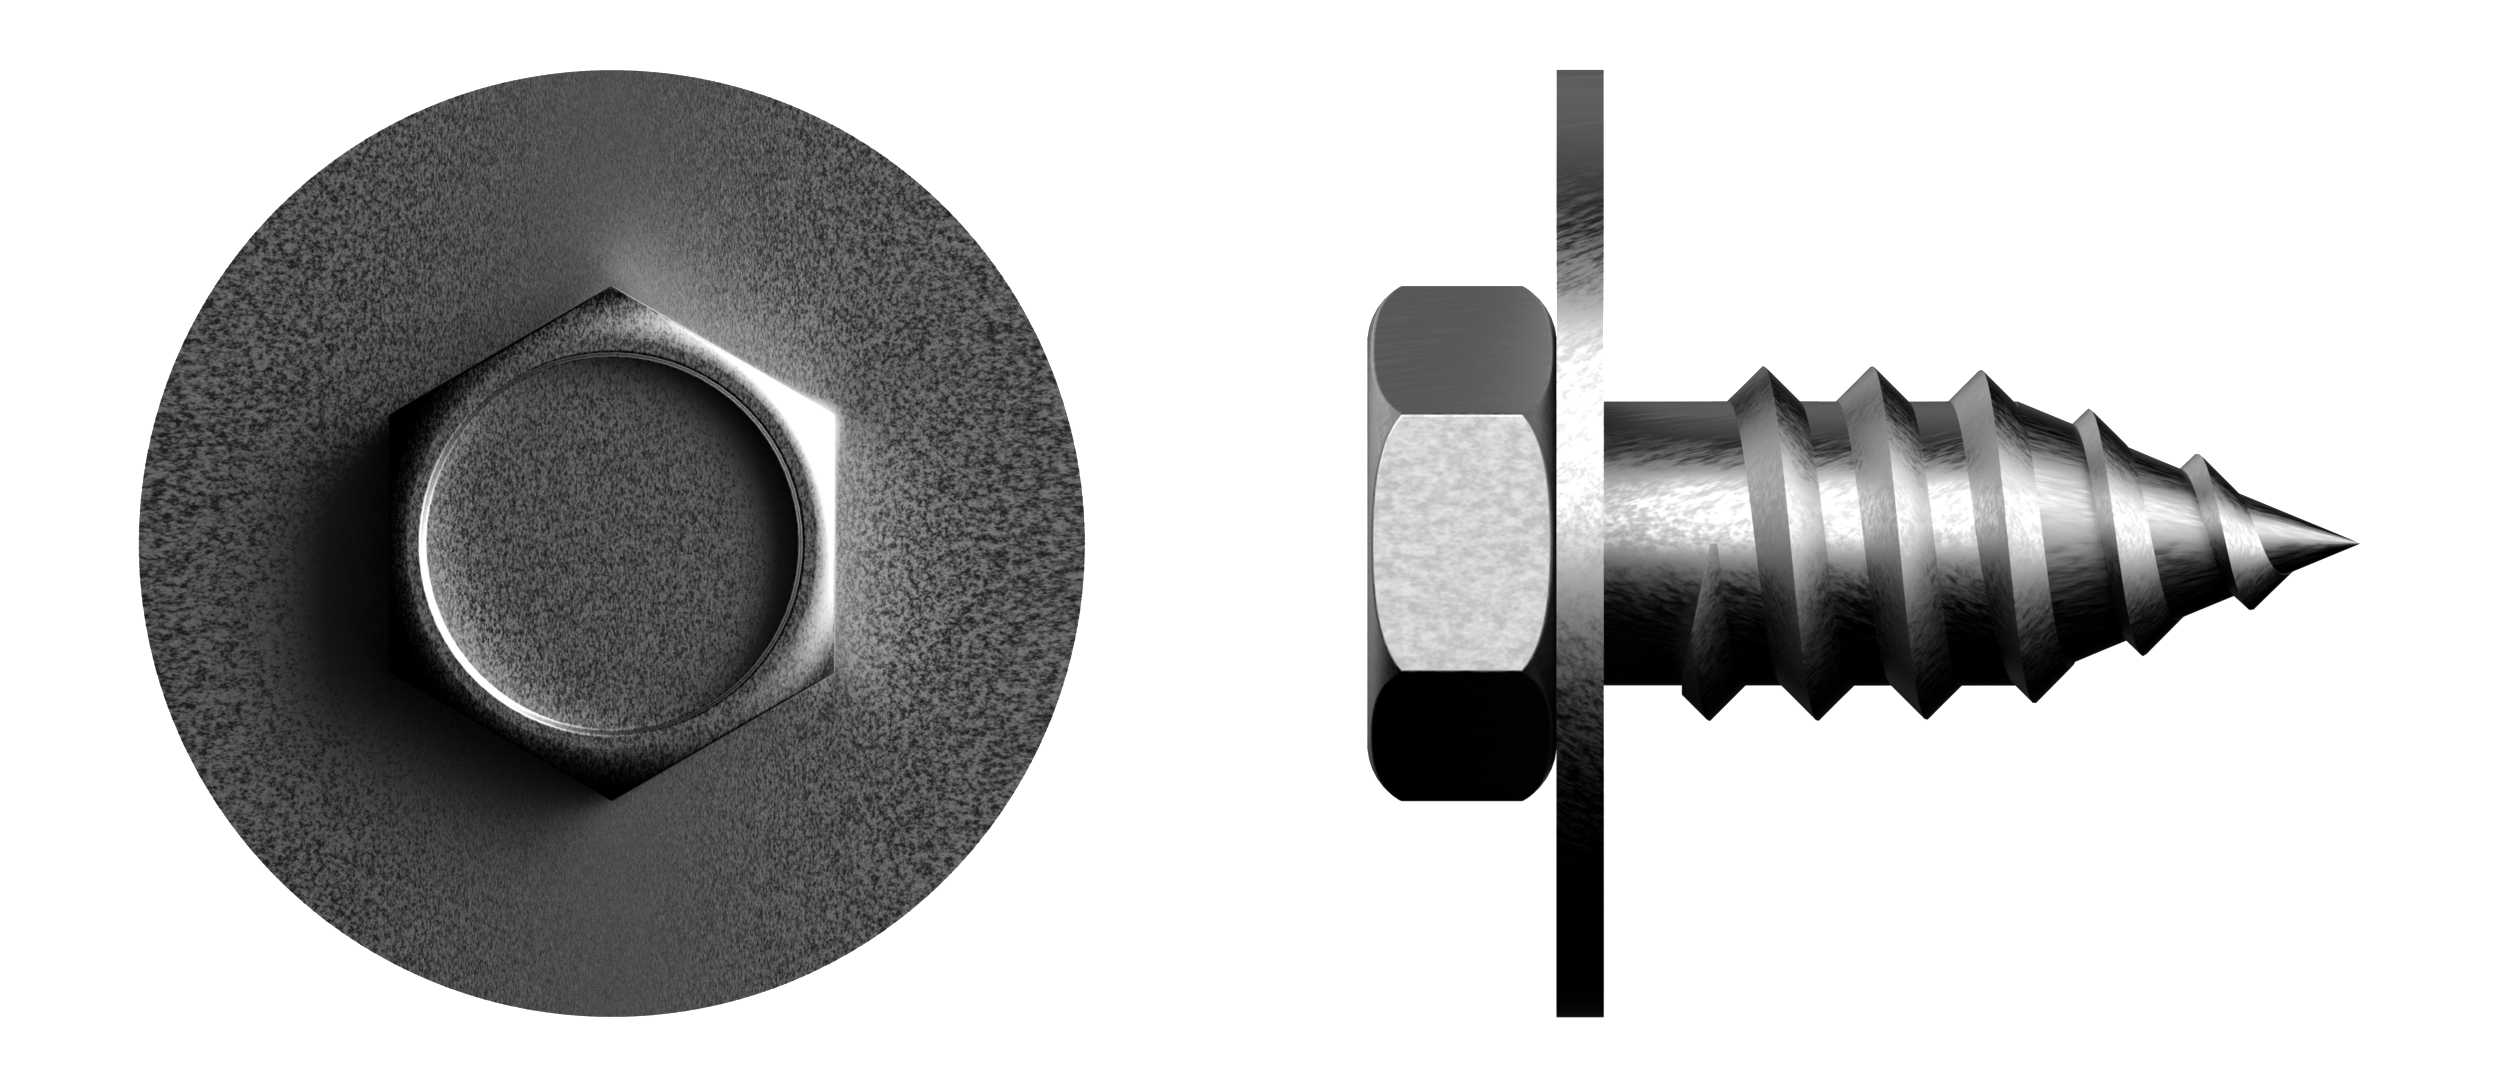 M6_tapping-screw-washer.png